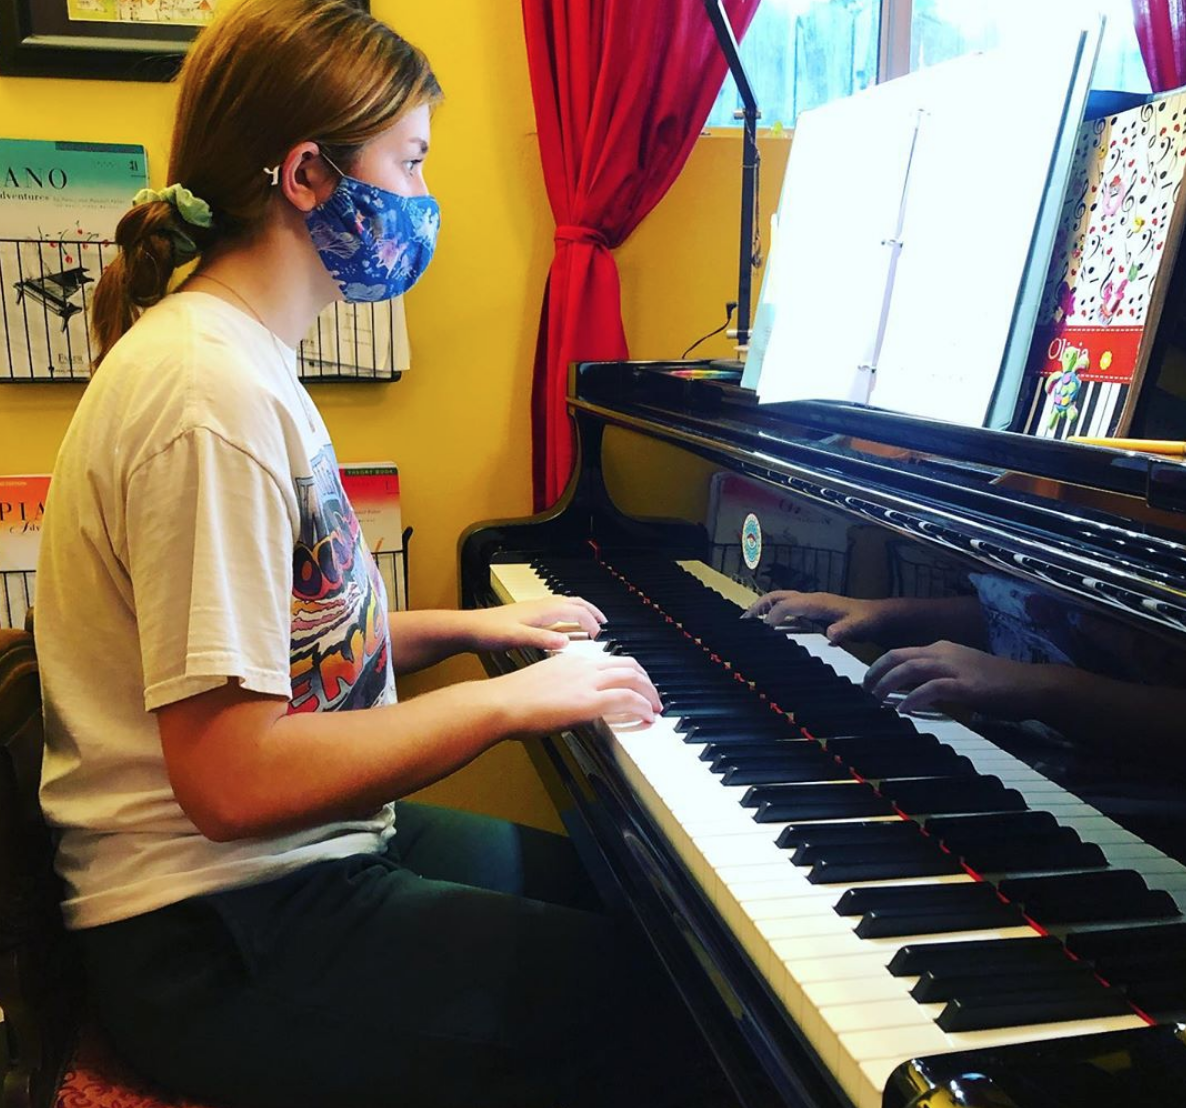 Customized Piano Lessons with Former Pianist, Teacher & Composer From London 3